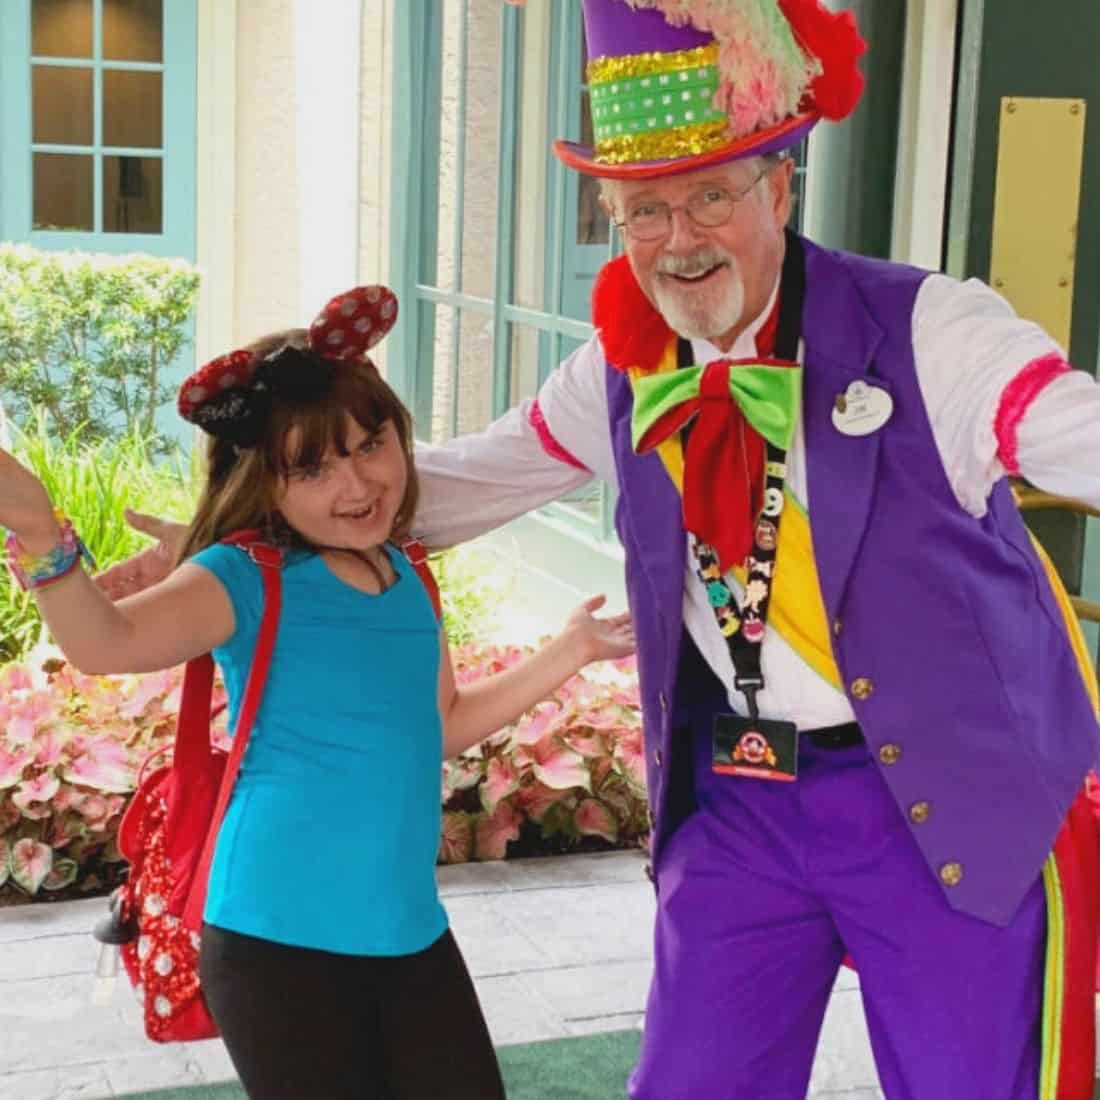 Girl in blue shirt and black pants posing with a man in a purple jester outfit